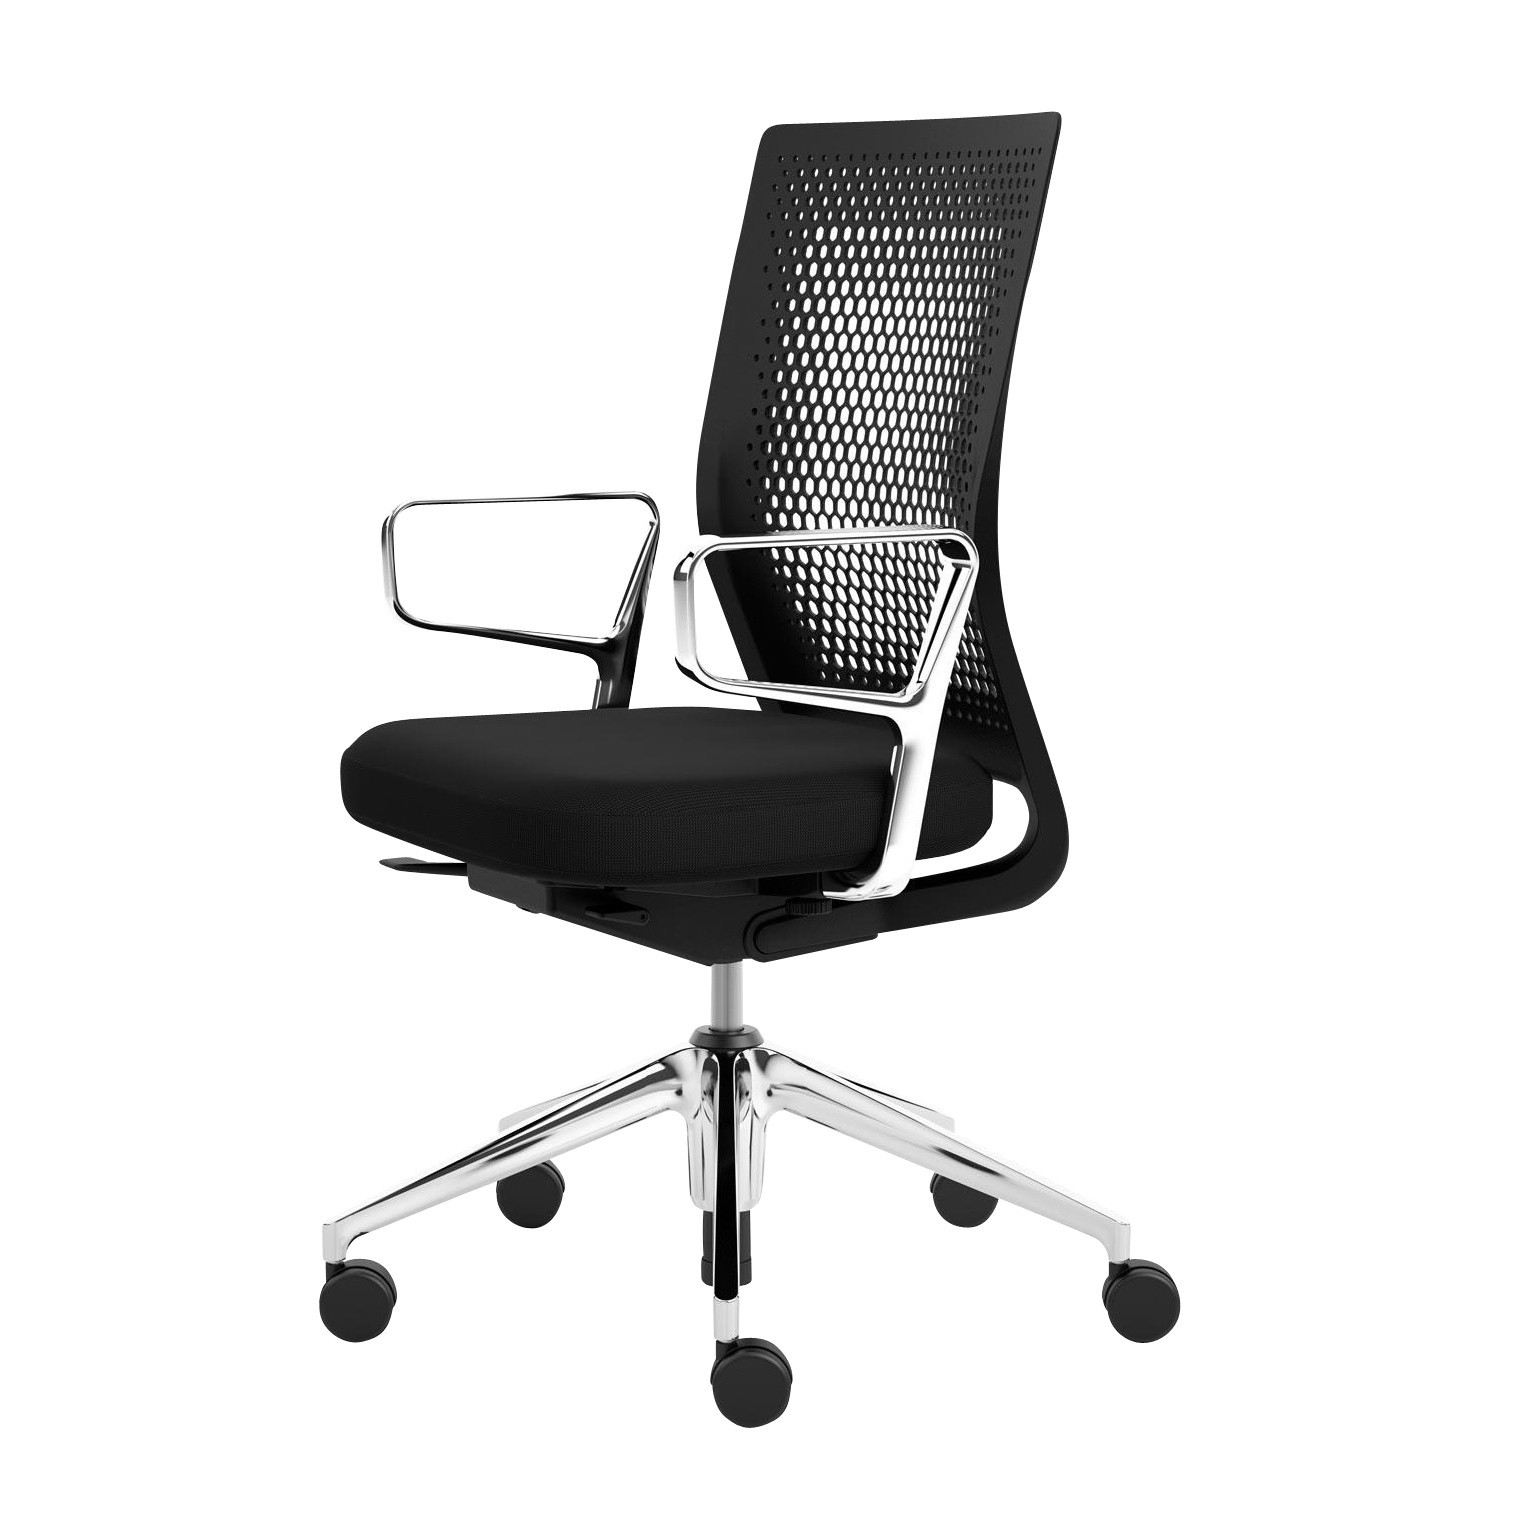 Vitra Office Chair Vitra Id Air Office Chair With Ring Armrests